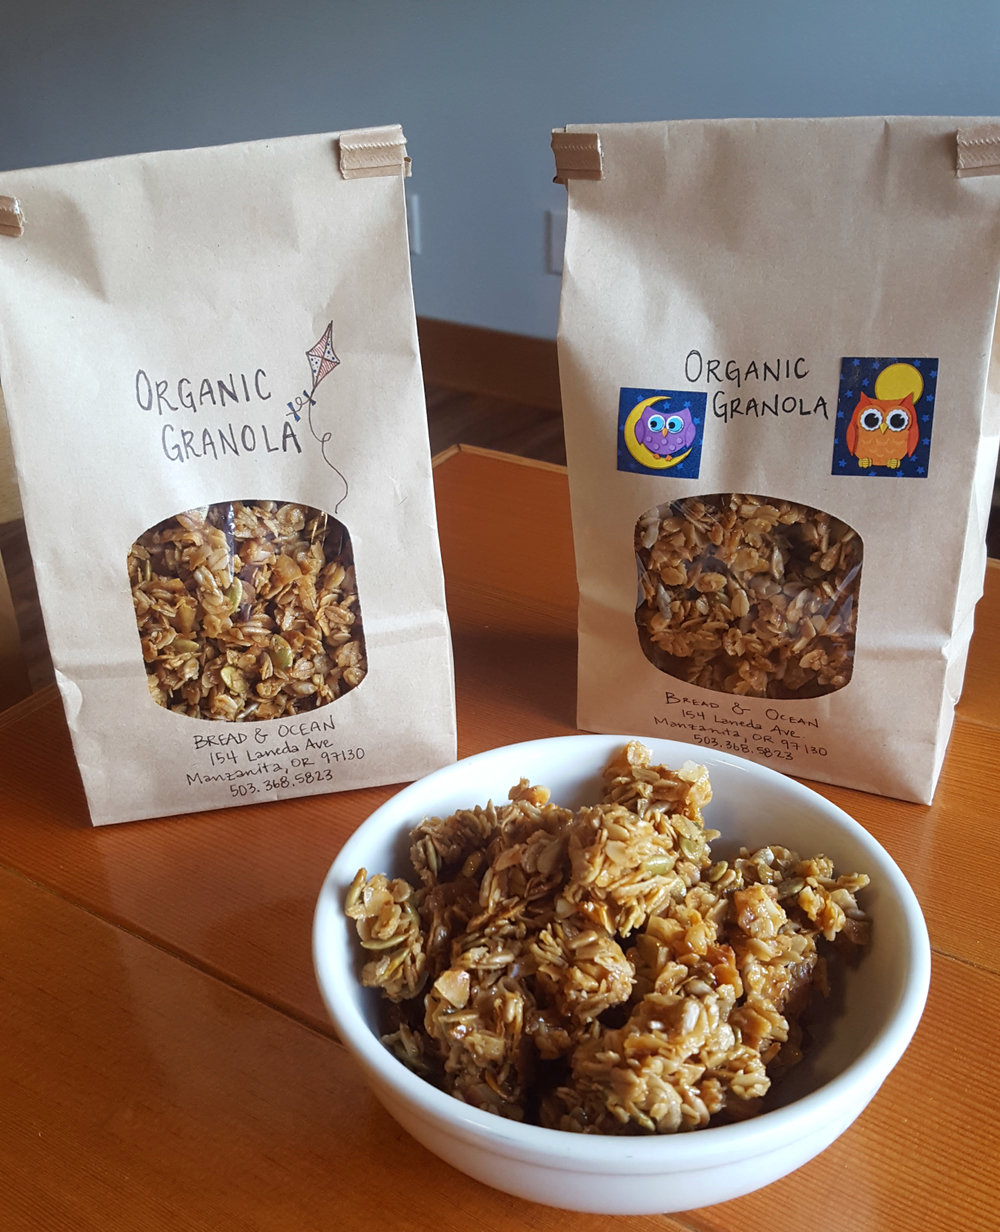 Homemade Organic Granola comes in a one pound bag for $10.00 or come have a Granola Bowl with fresh fruit and yogurt (or milk) for $9.00.